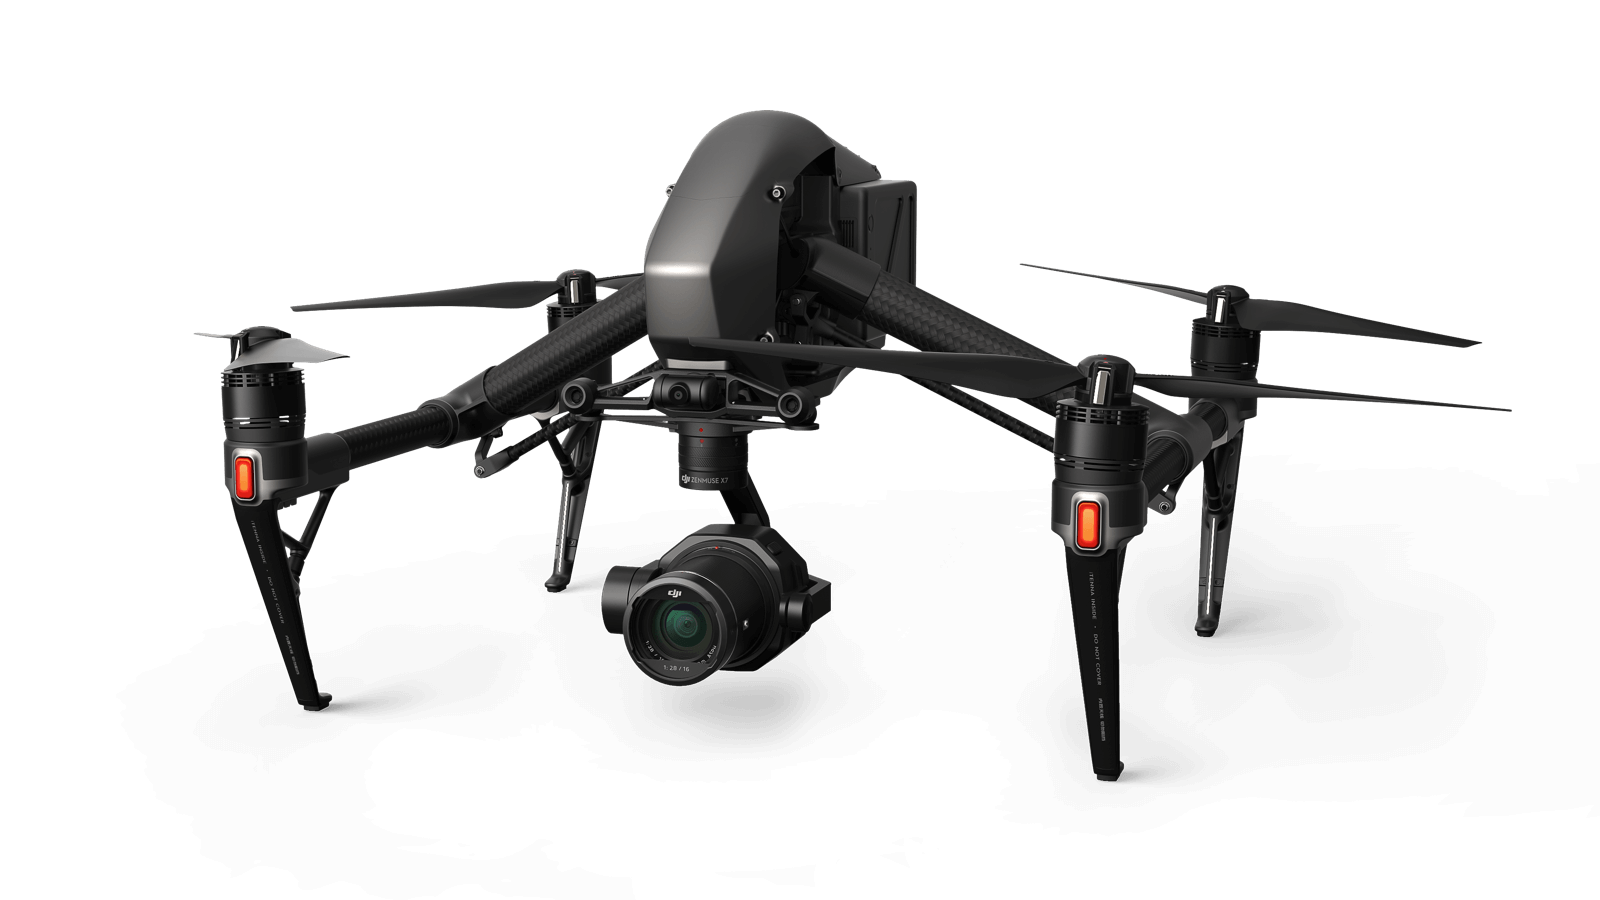 Zenmuse-X7-Camera-Inspire-2-JWStuff-South-Africa Drone